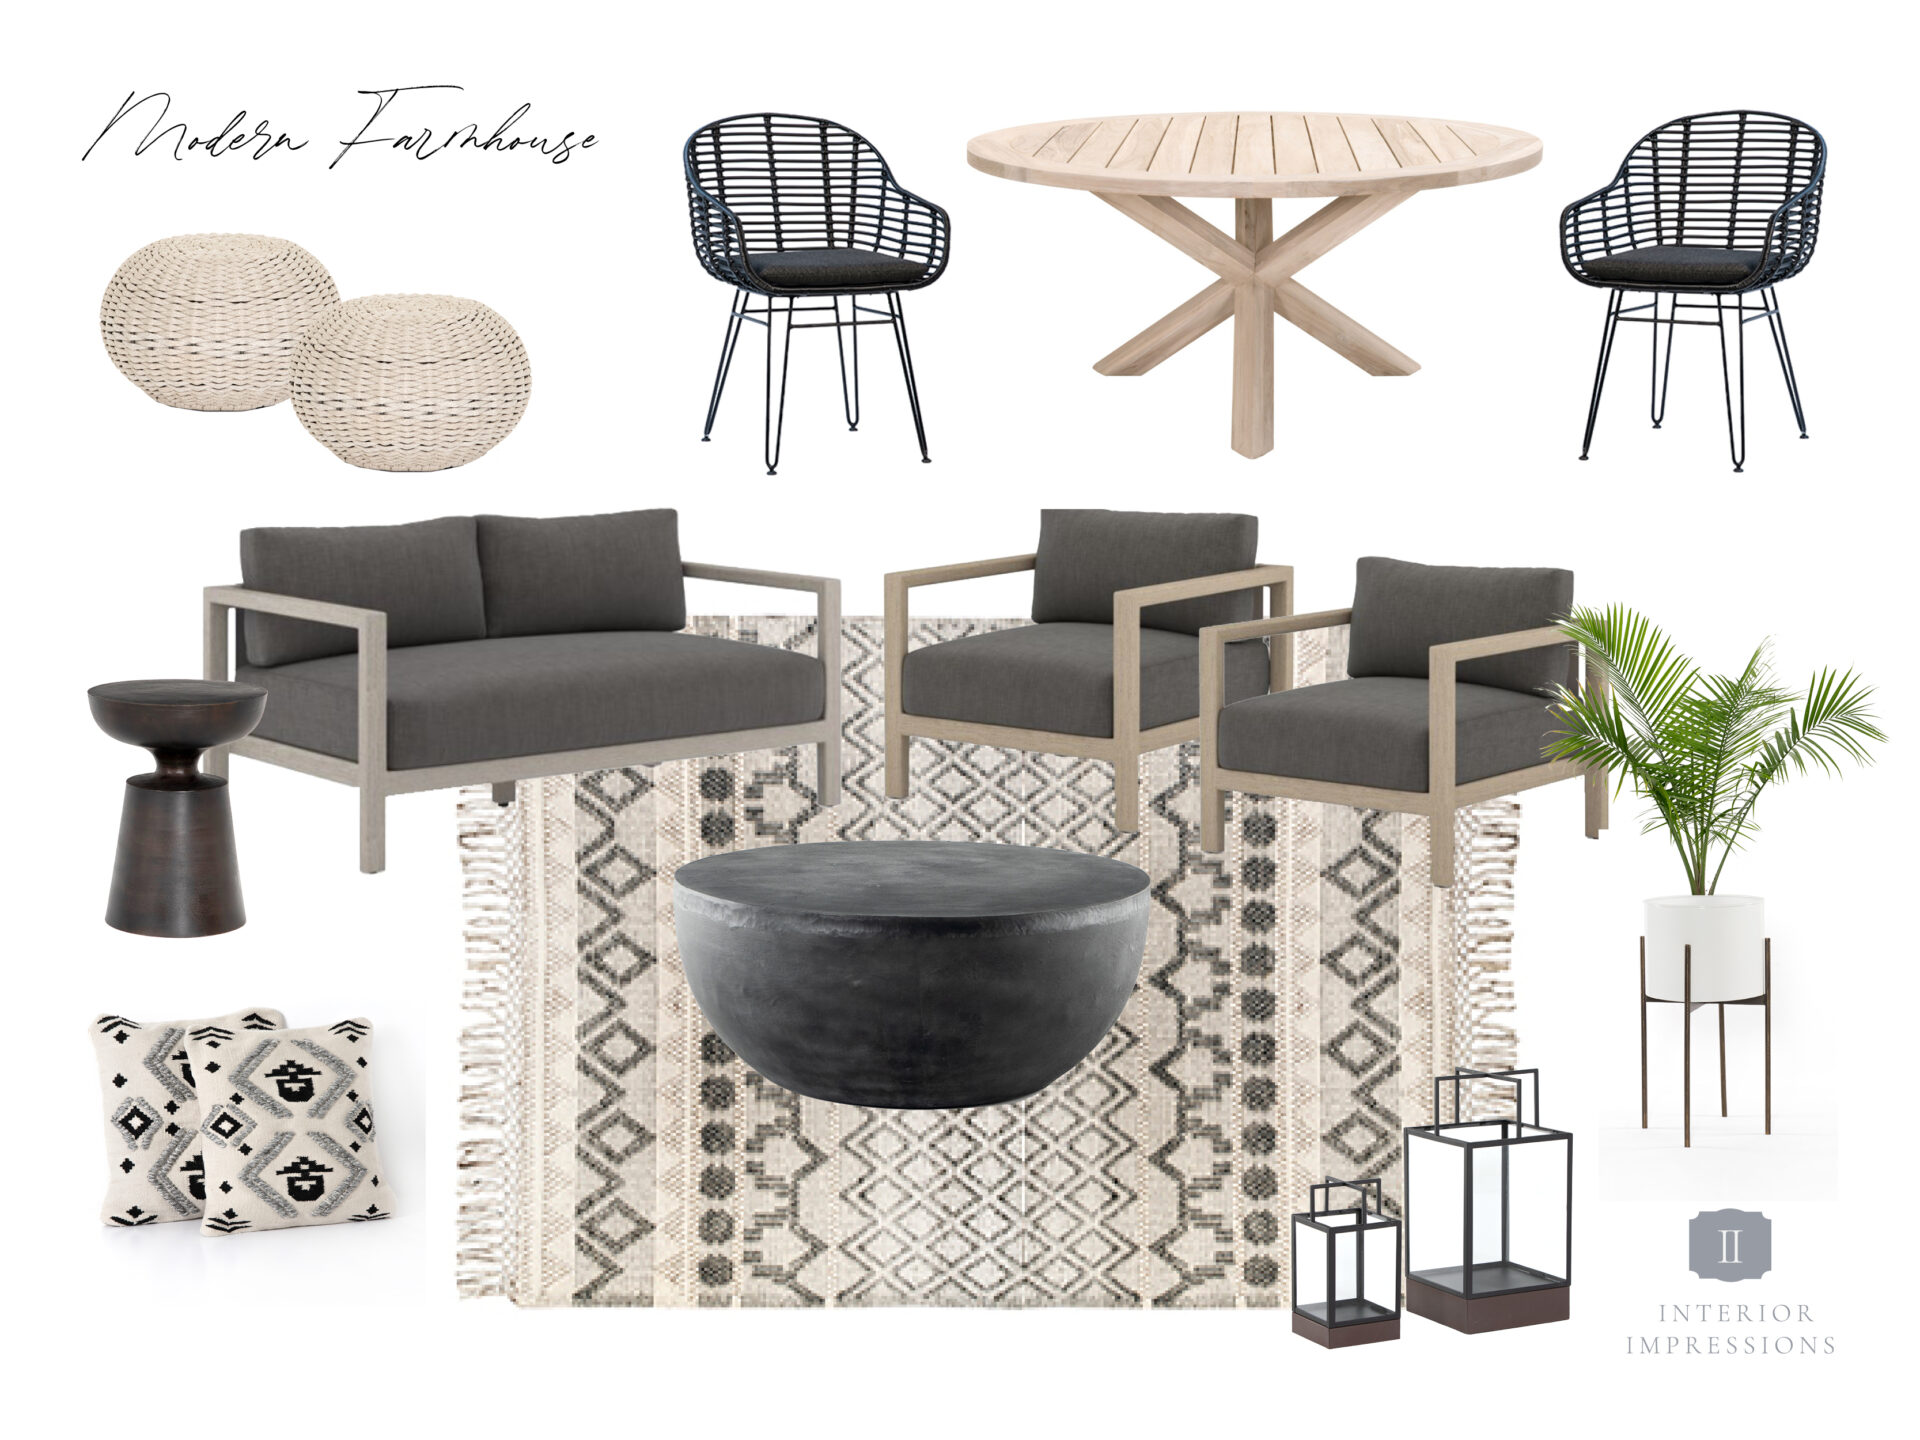 3 outdoor furniture mood boards for